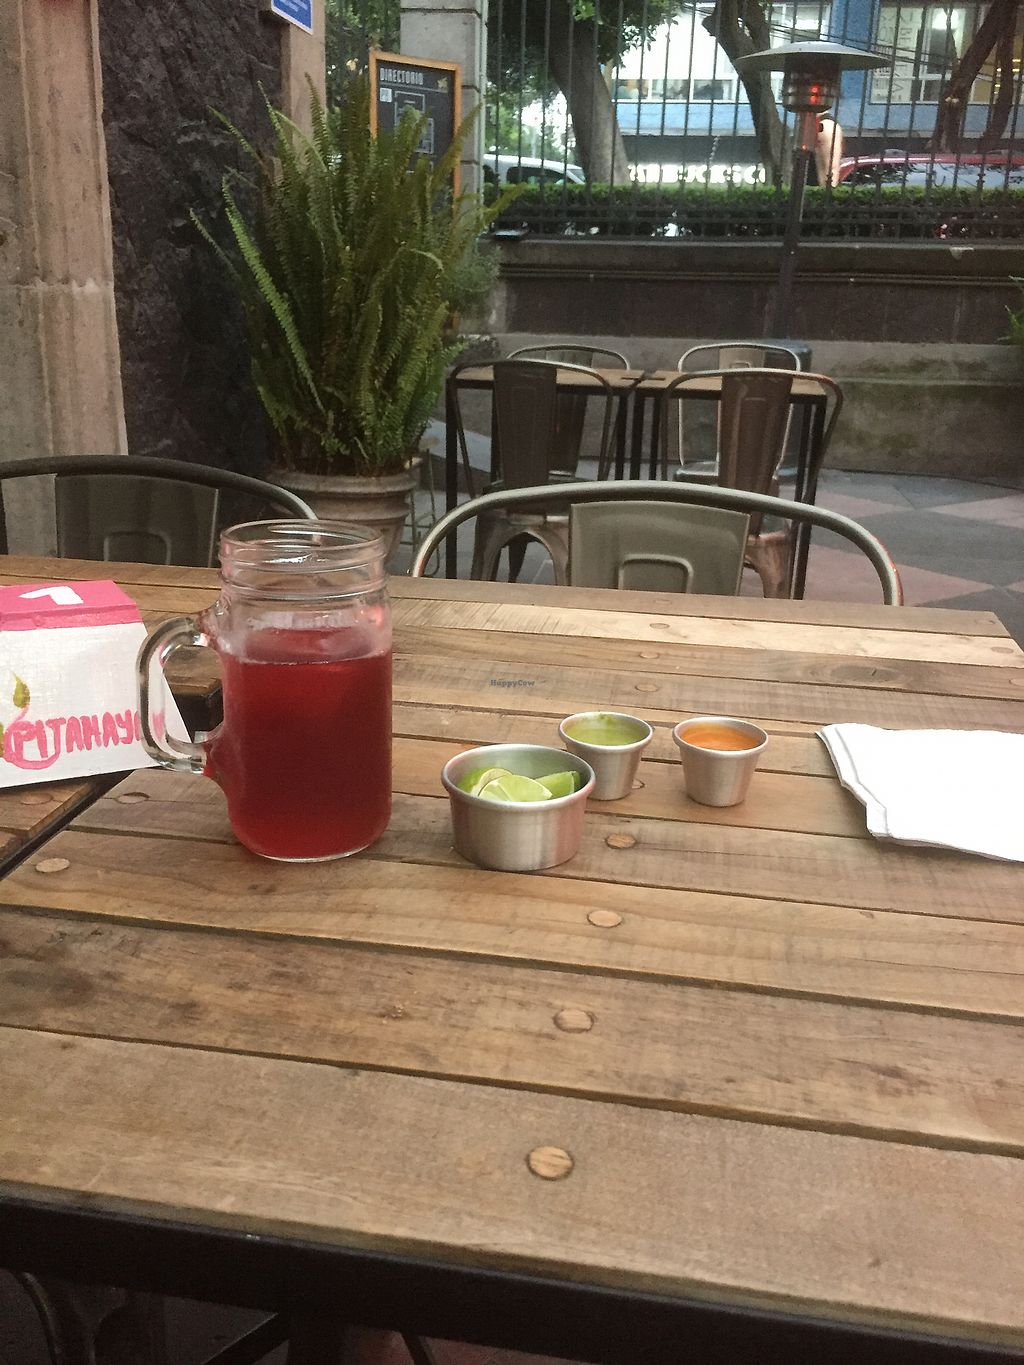 "Photo of La Pitahaya Vegana  by <a href=""/members/profile/vegannomad2"">vegannomad2</a> <br/>Drink with agave  <br/> September 15, 2017  - <a href='/contact/abuse/image/69829/304606'>Report</a>"